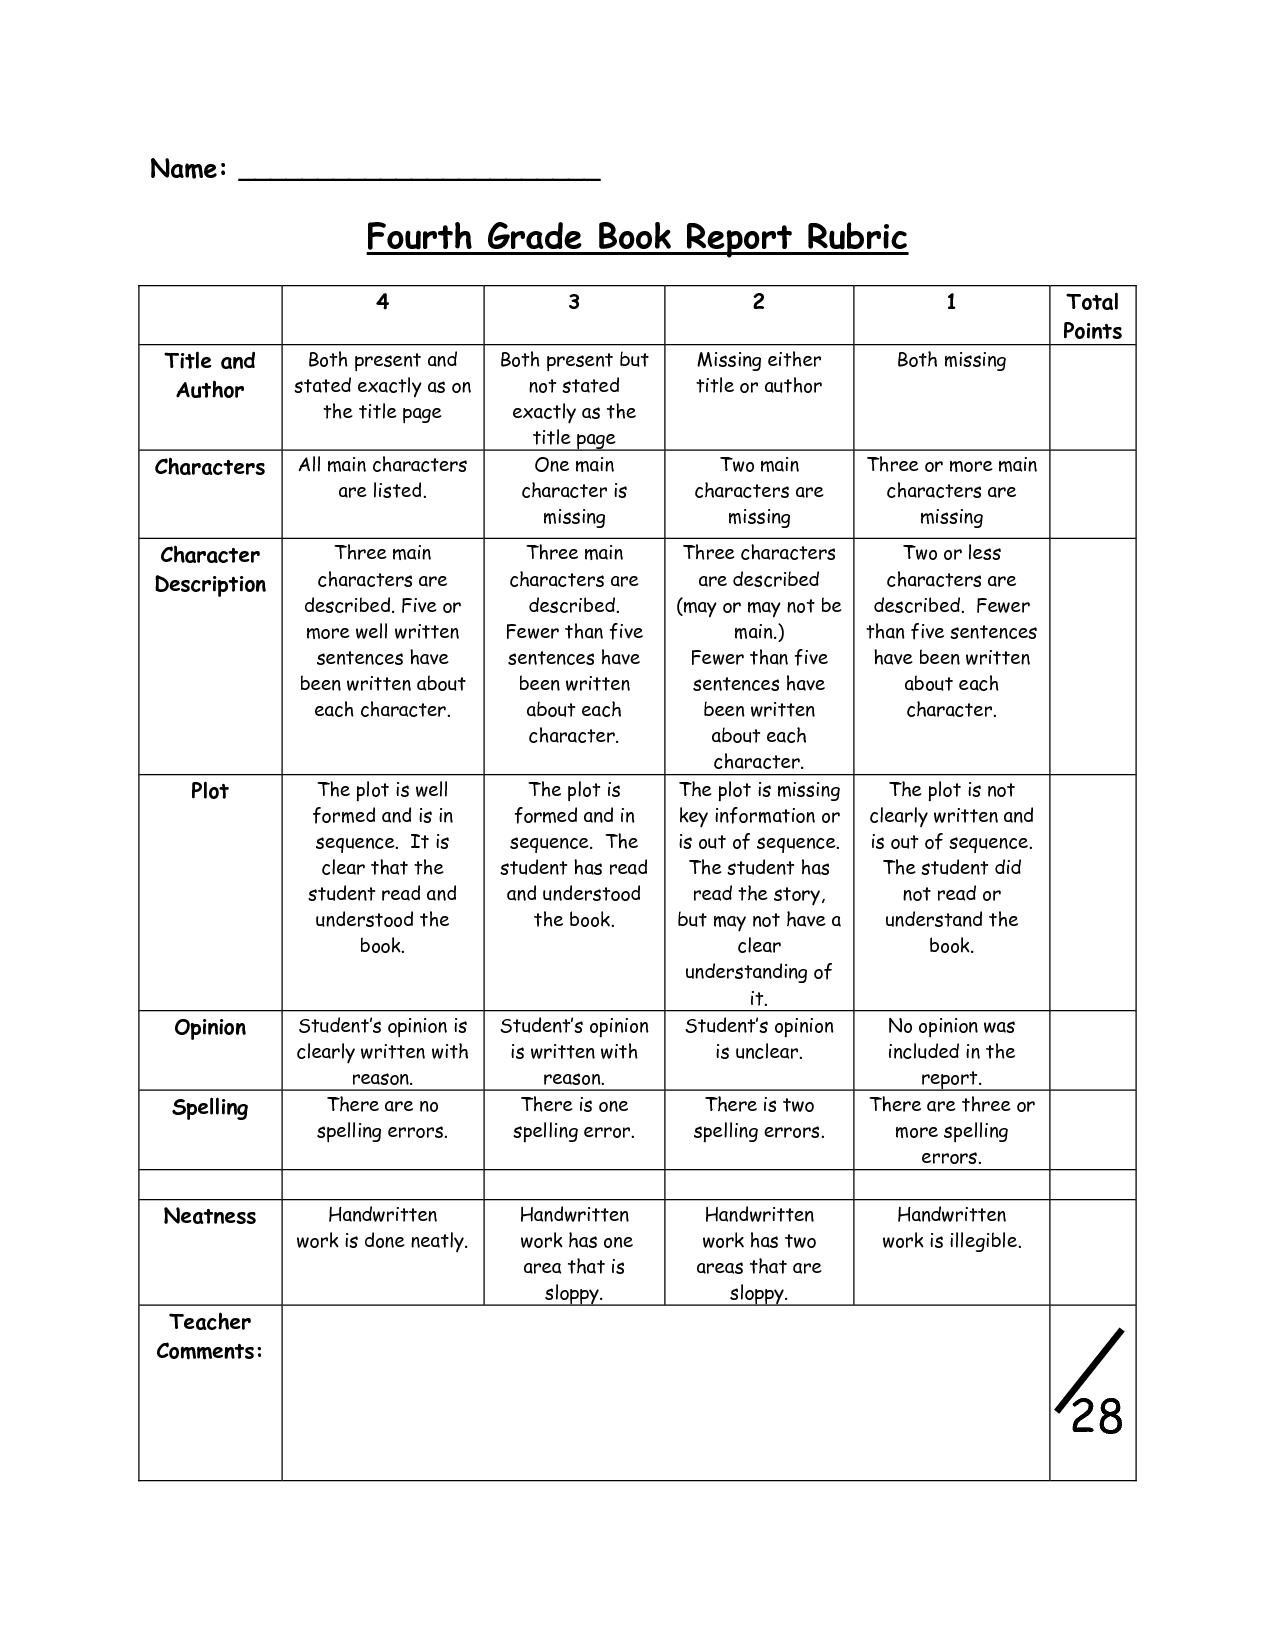 Fourth grade book report rubric pdf pdf teaching for History rubric template